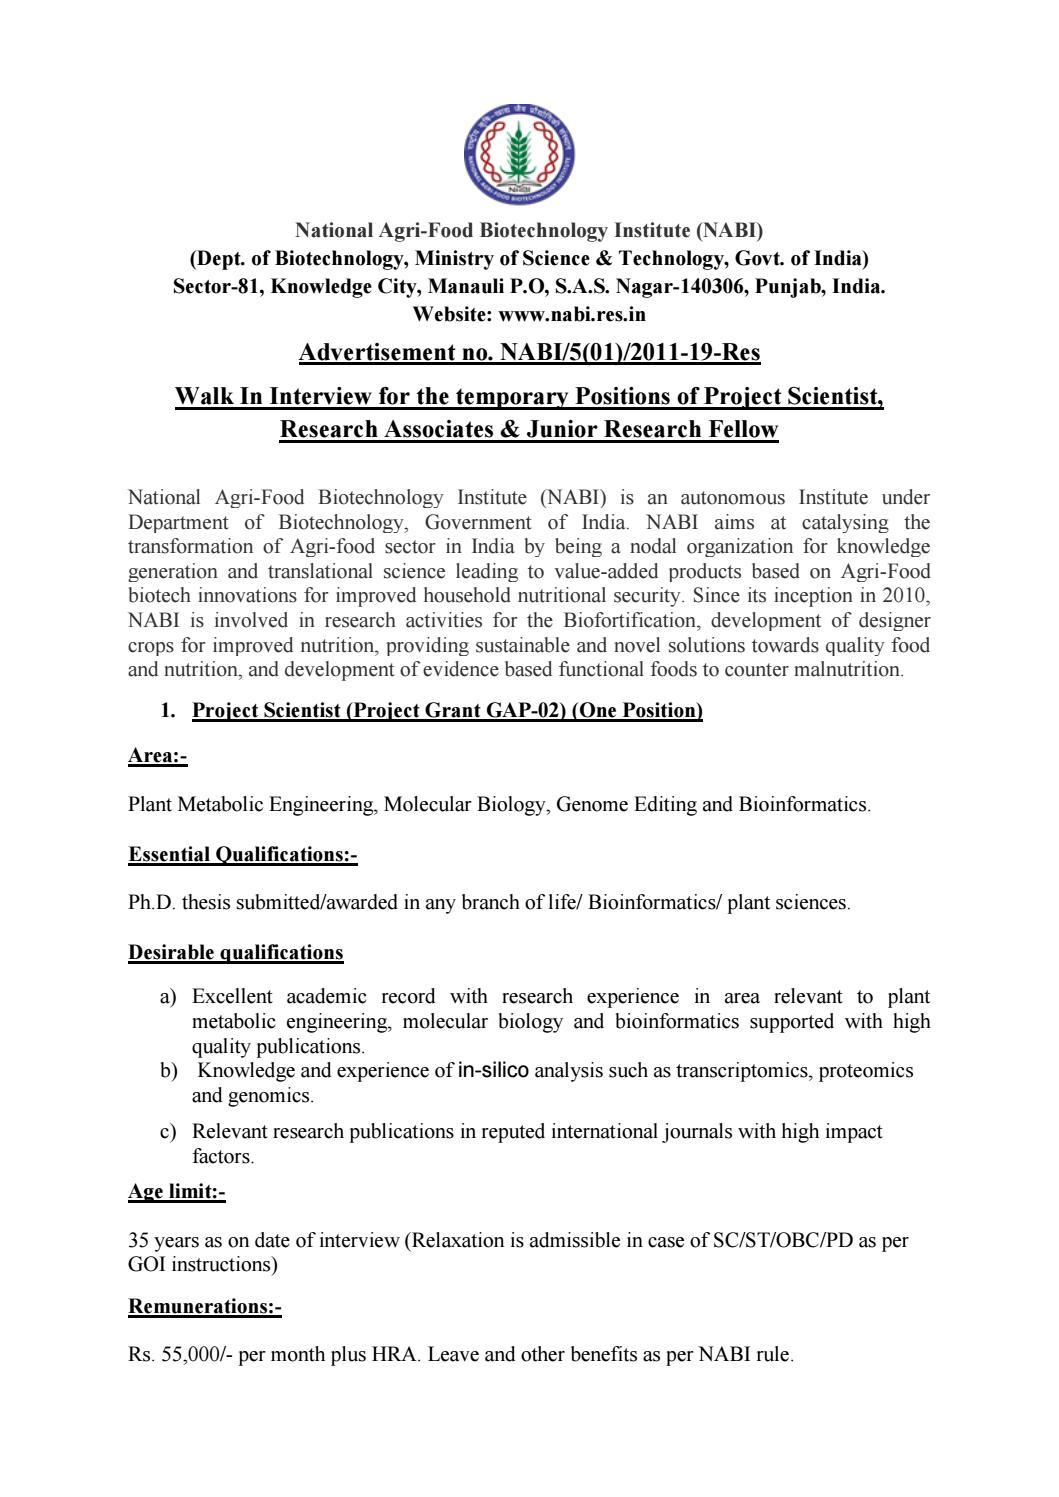 NABI Life Sciences Project Scientist/RA & JRF Jobs With Rs